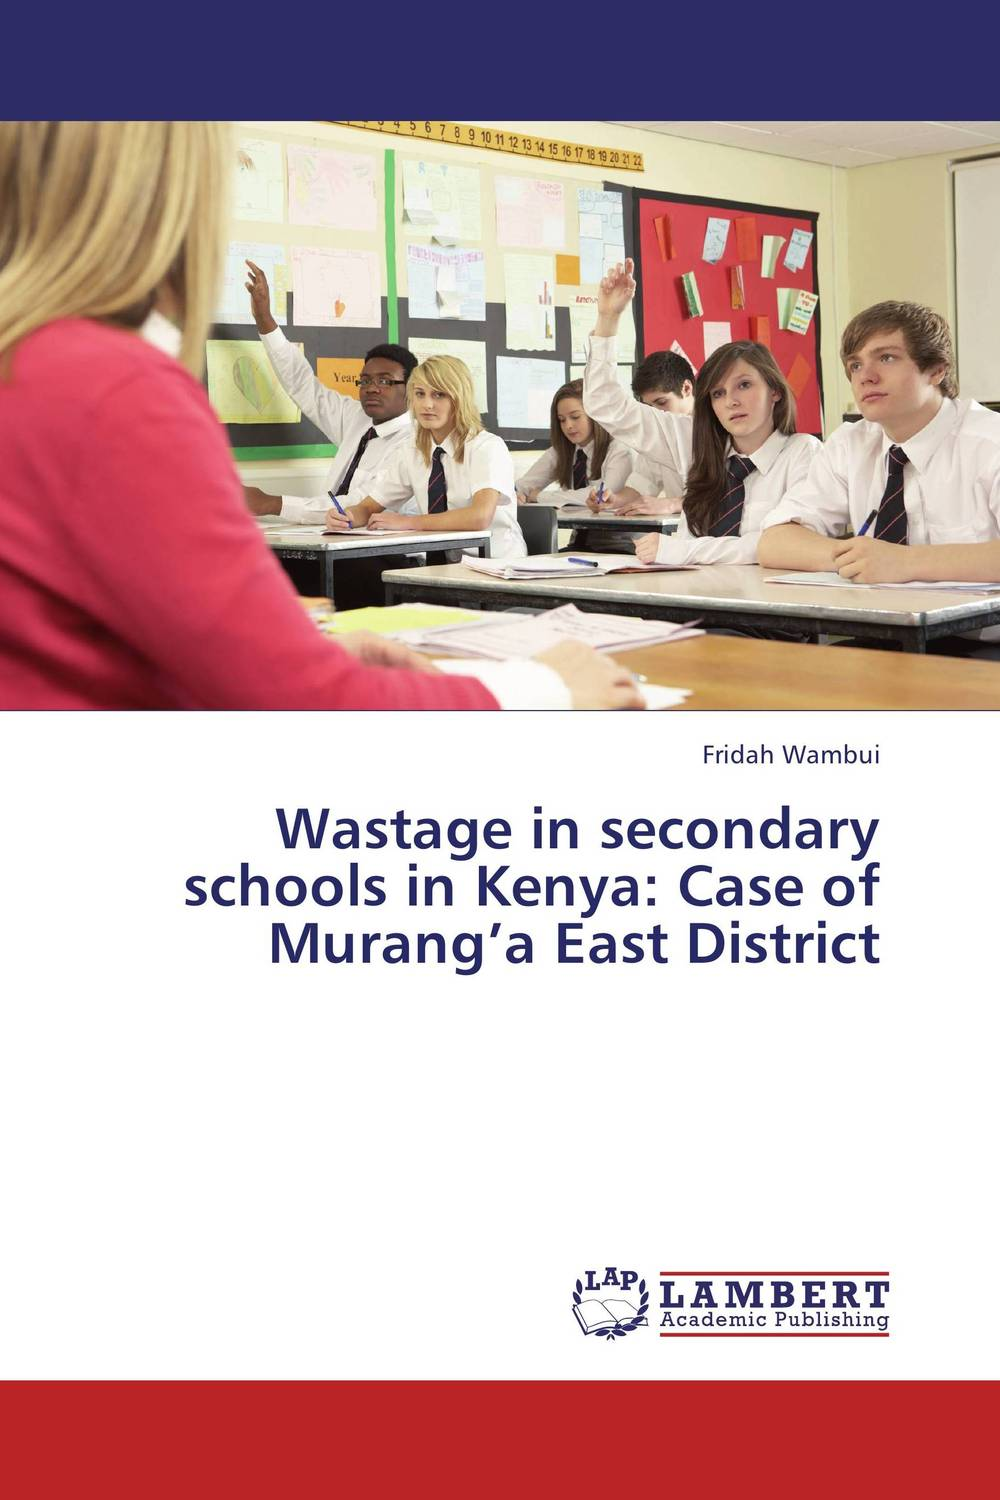 купить Wastage in secondary schools in Kenya: Case of Murang'a East District недорого